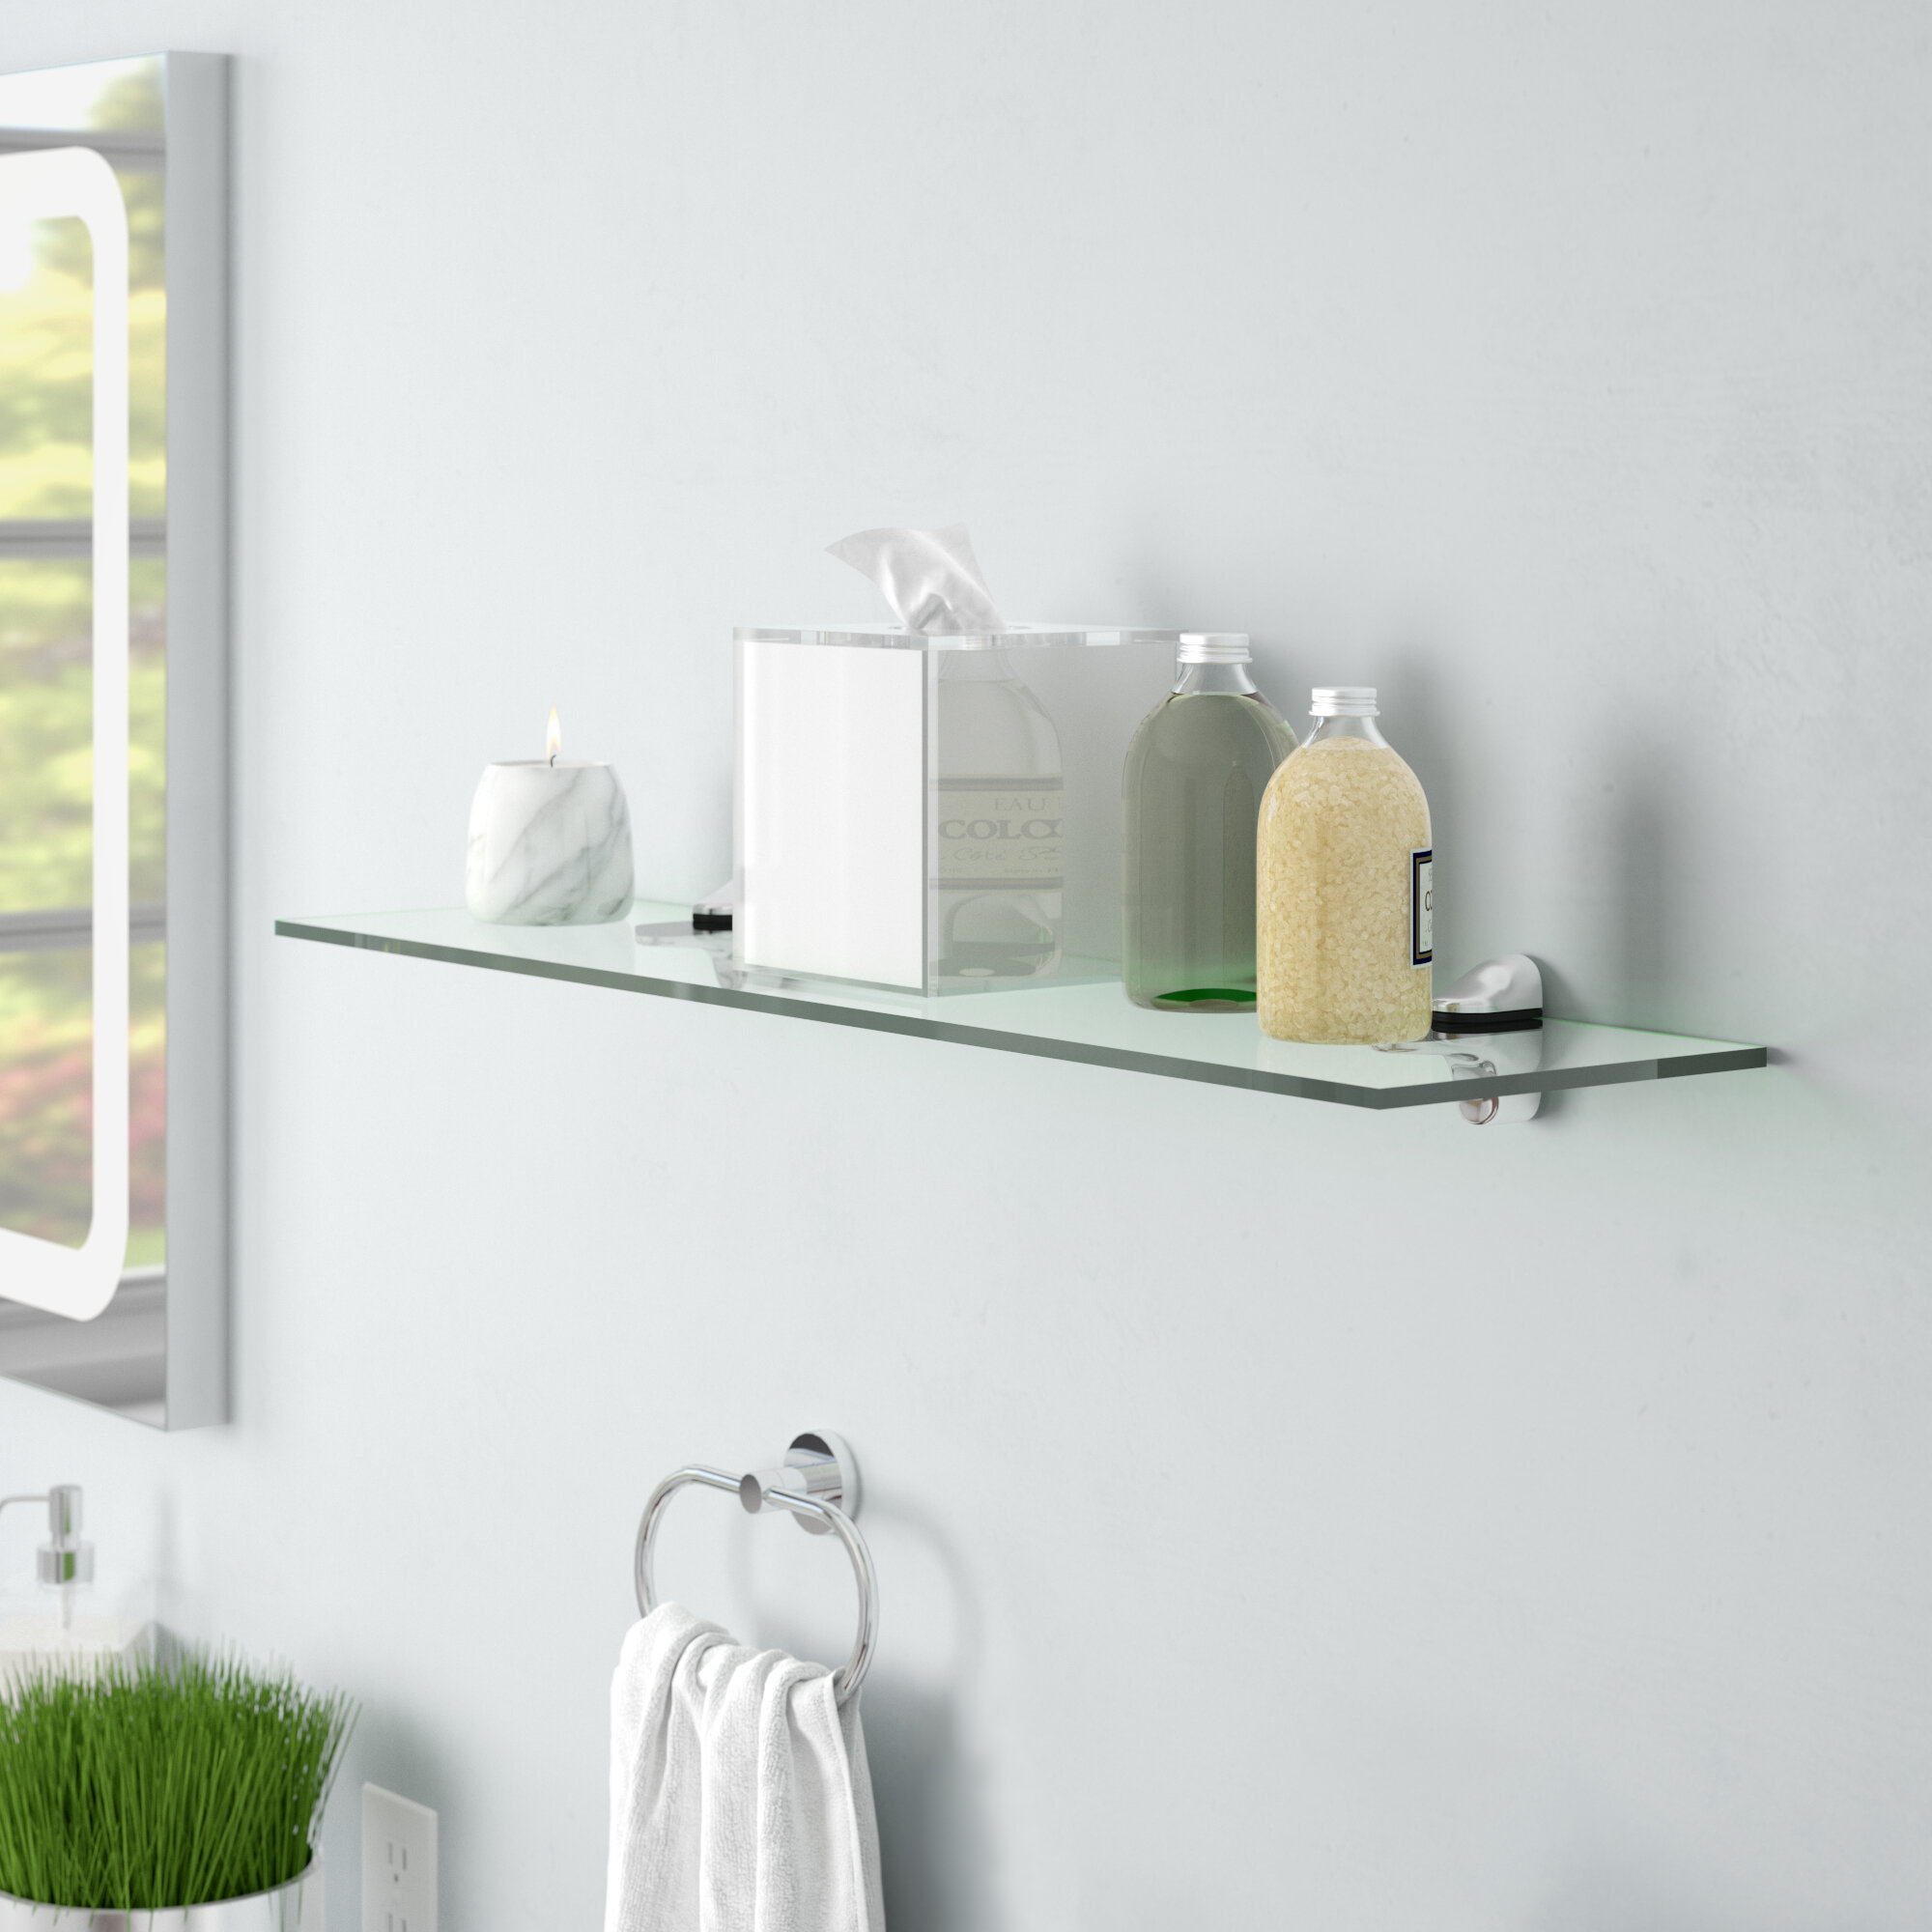 Wondrous Clear Tempered Glass Floating Shelf Download Free Architecture Designs Embacsunscenecom